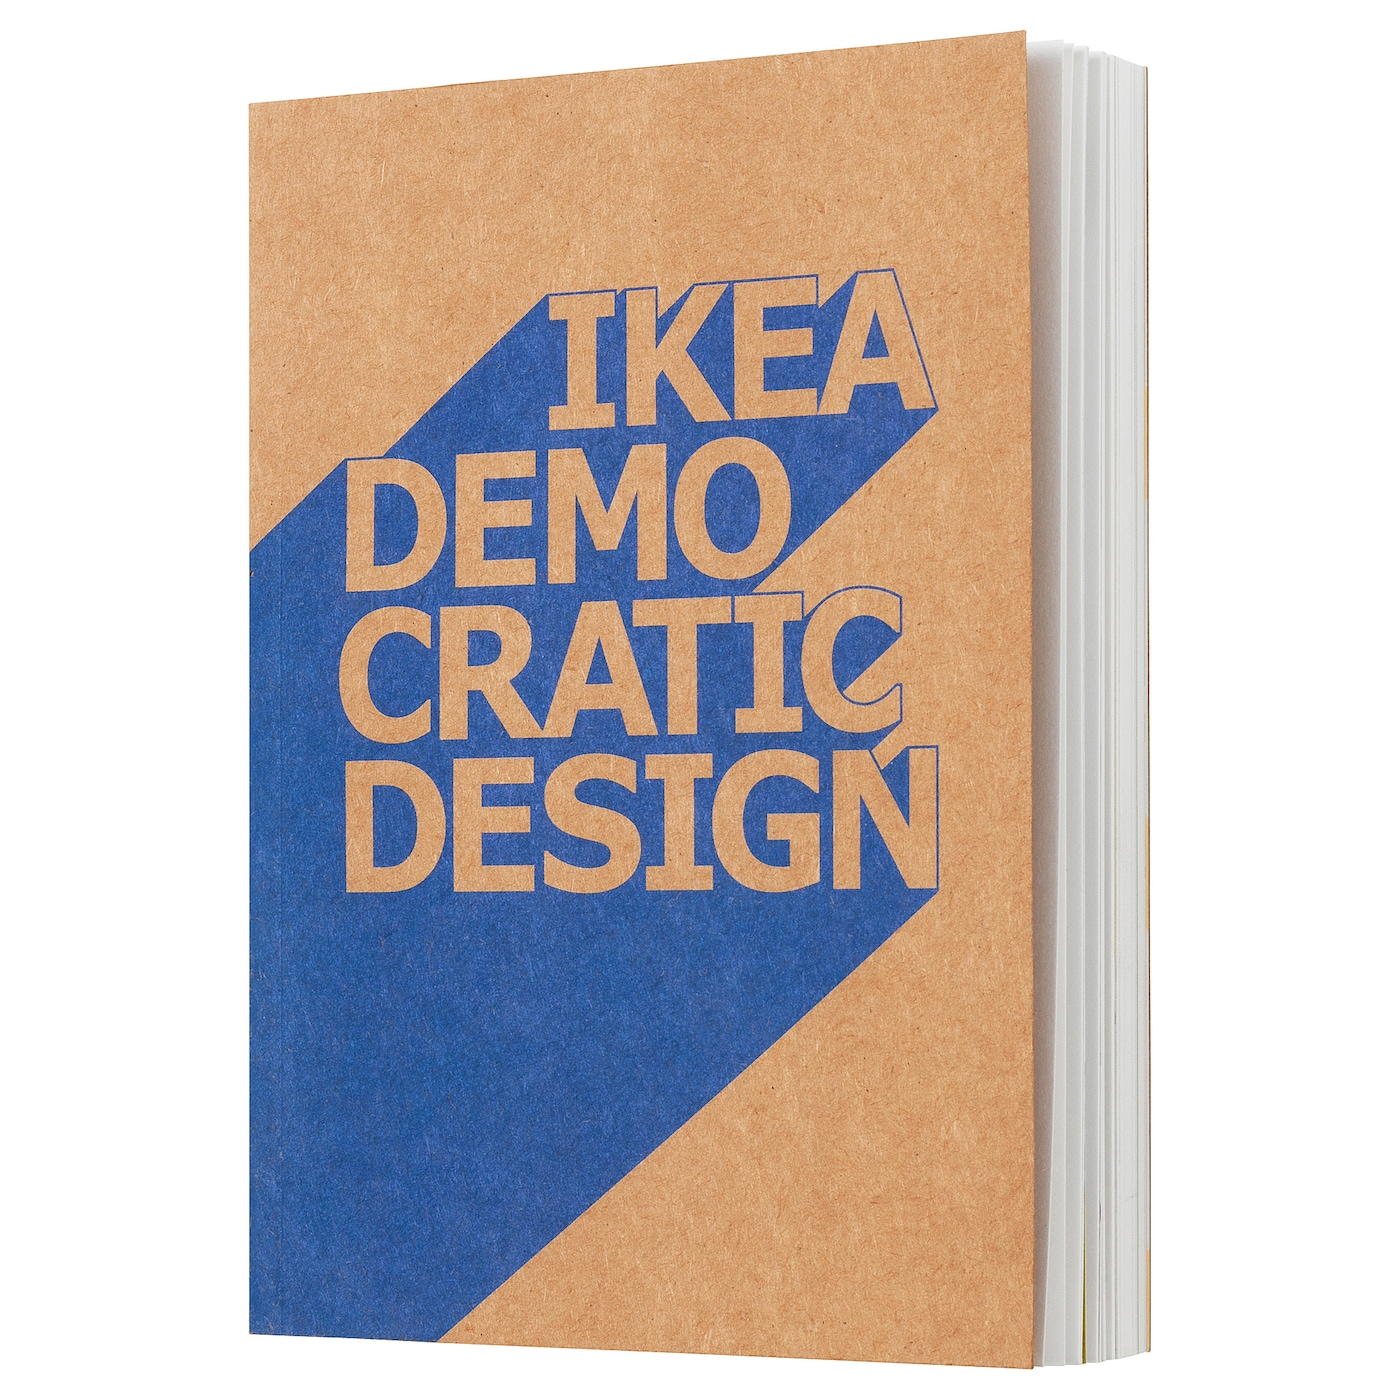 IKEA IKEA DEMOCRATIC DESIGN livre